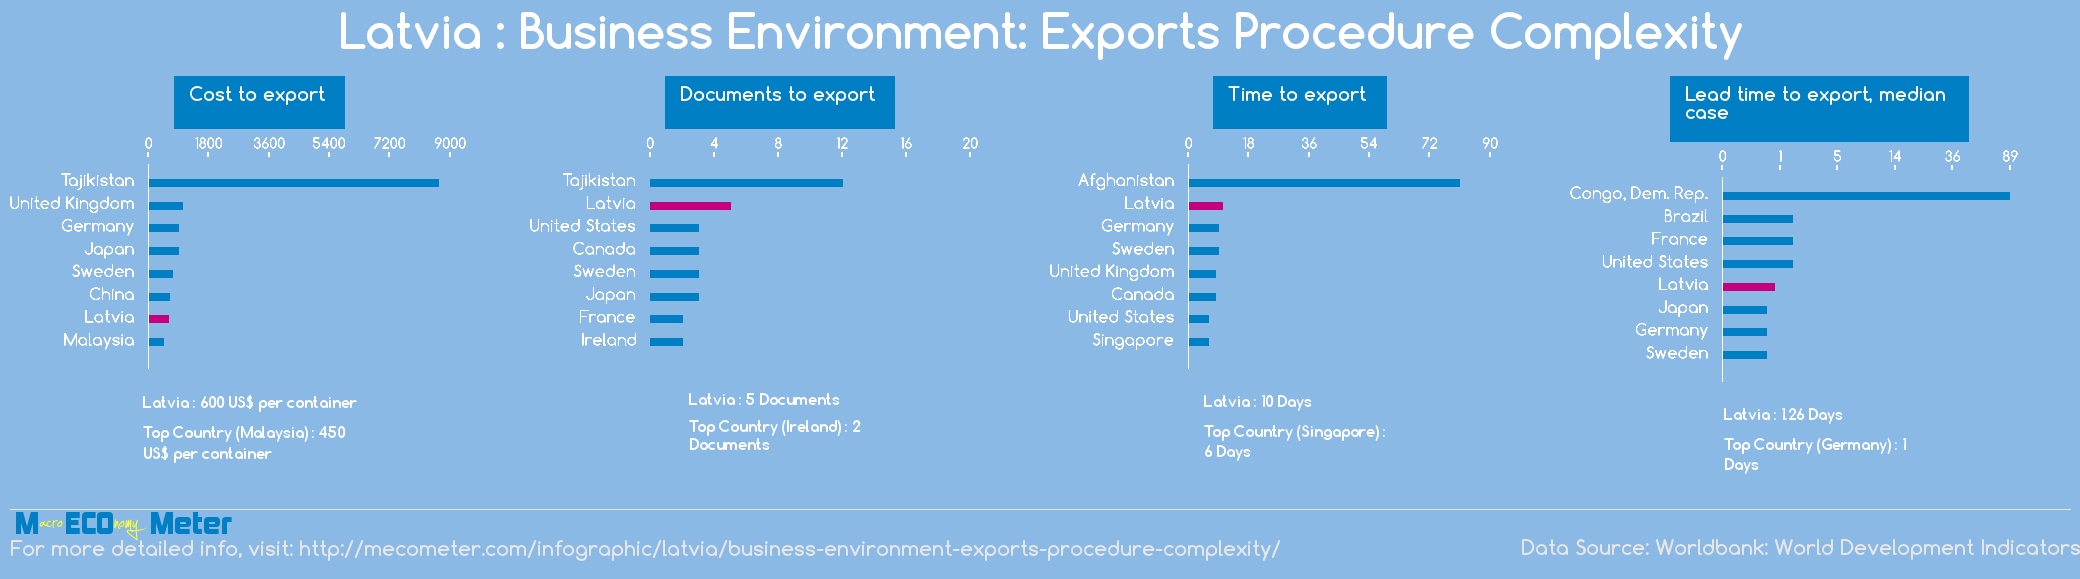 Latvia : Business Environment: Exports Procedure Complexity